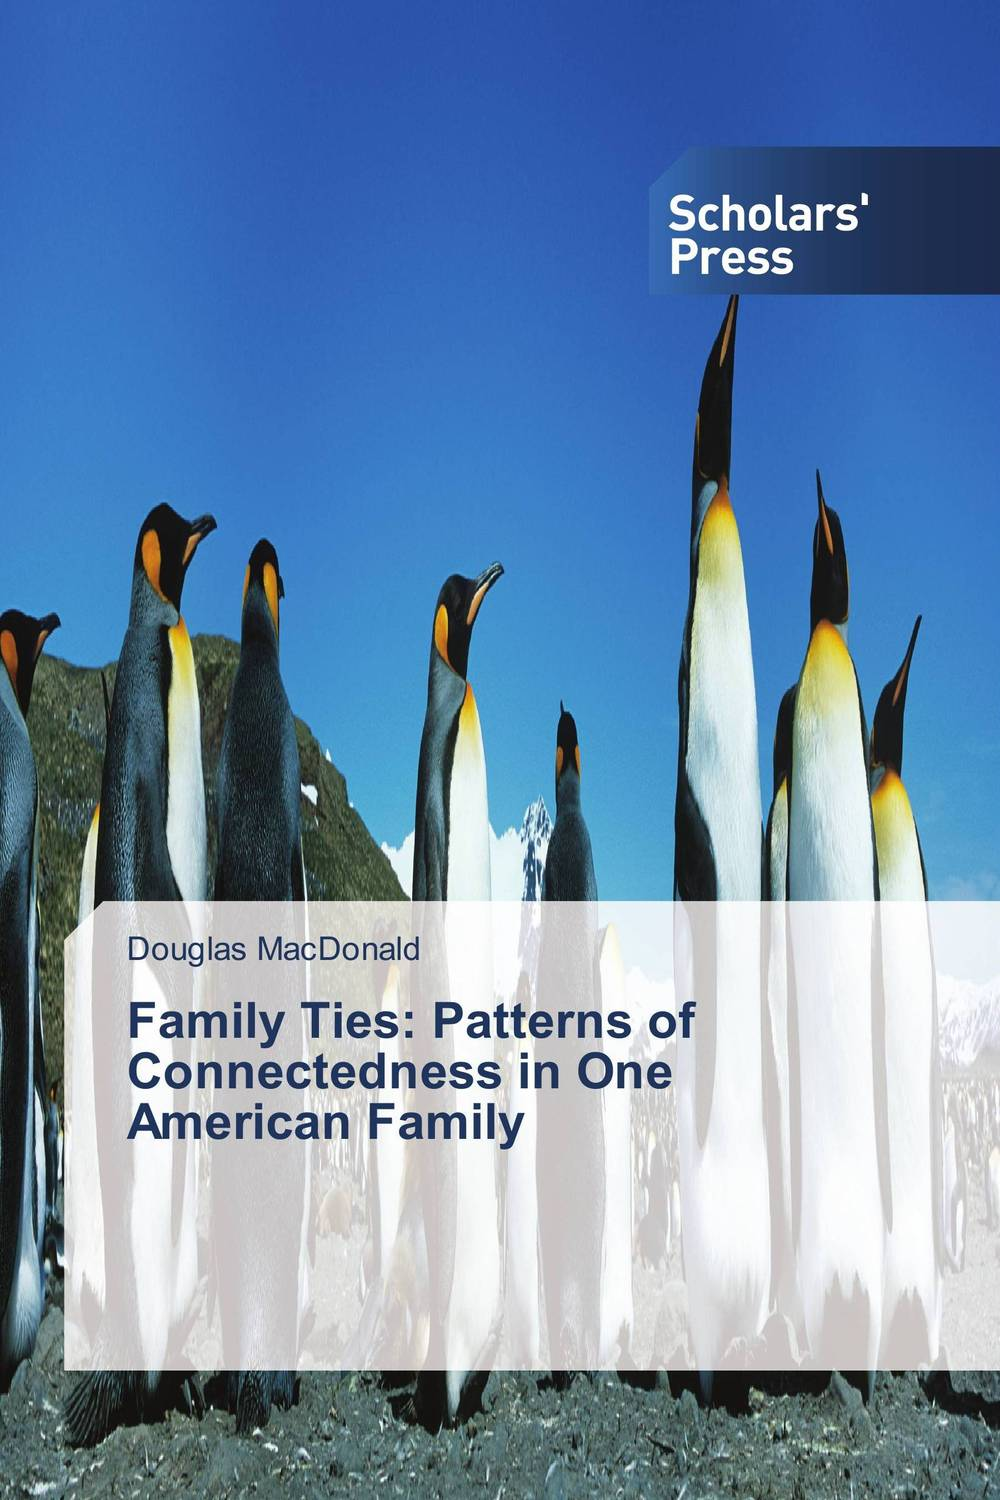 Family Ties: Patterns of Connectedness in One American Family family ties